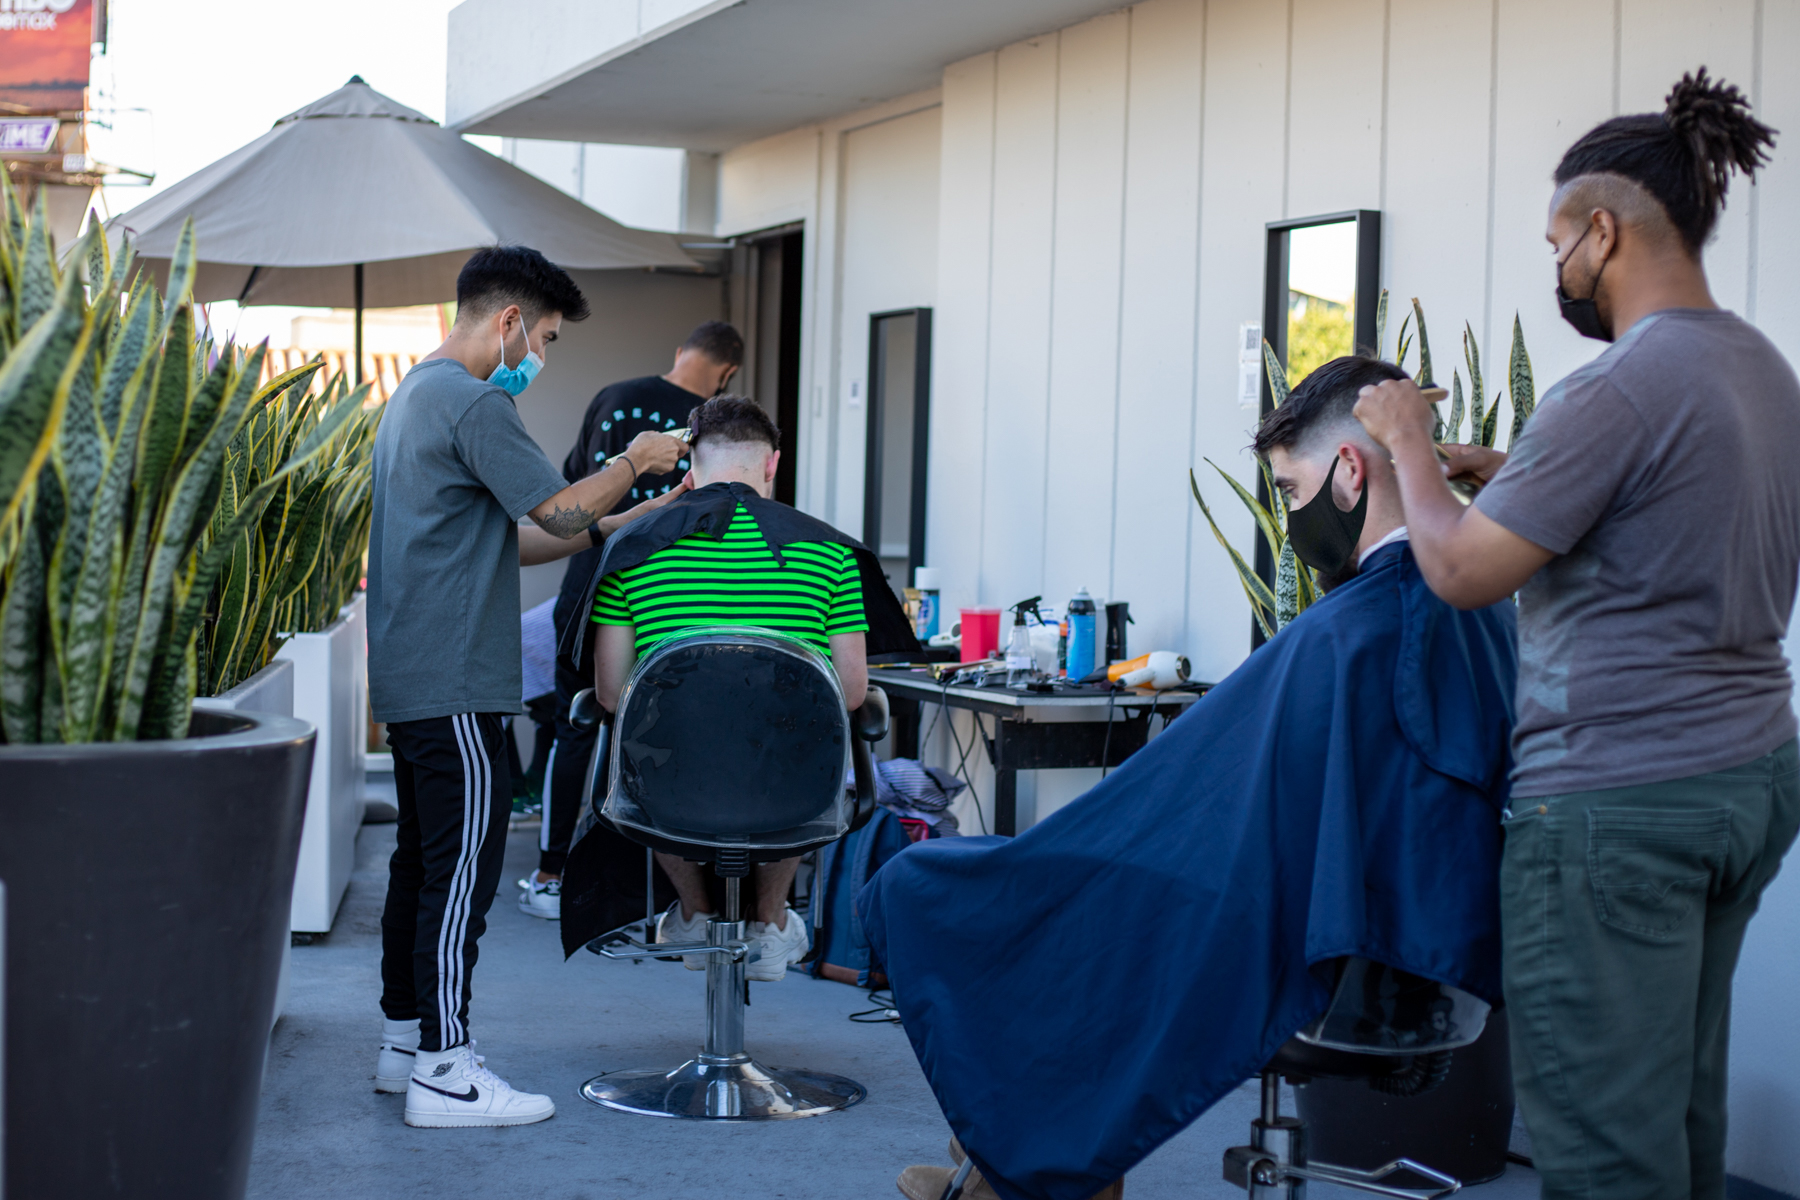 hair stylists serve customers on the rooftop of Andaz West Hollywood